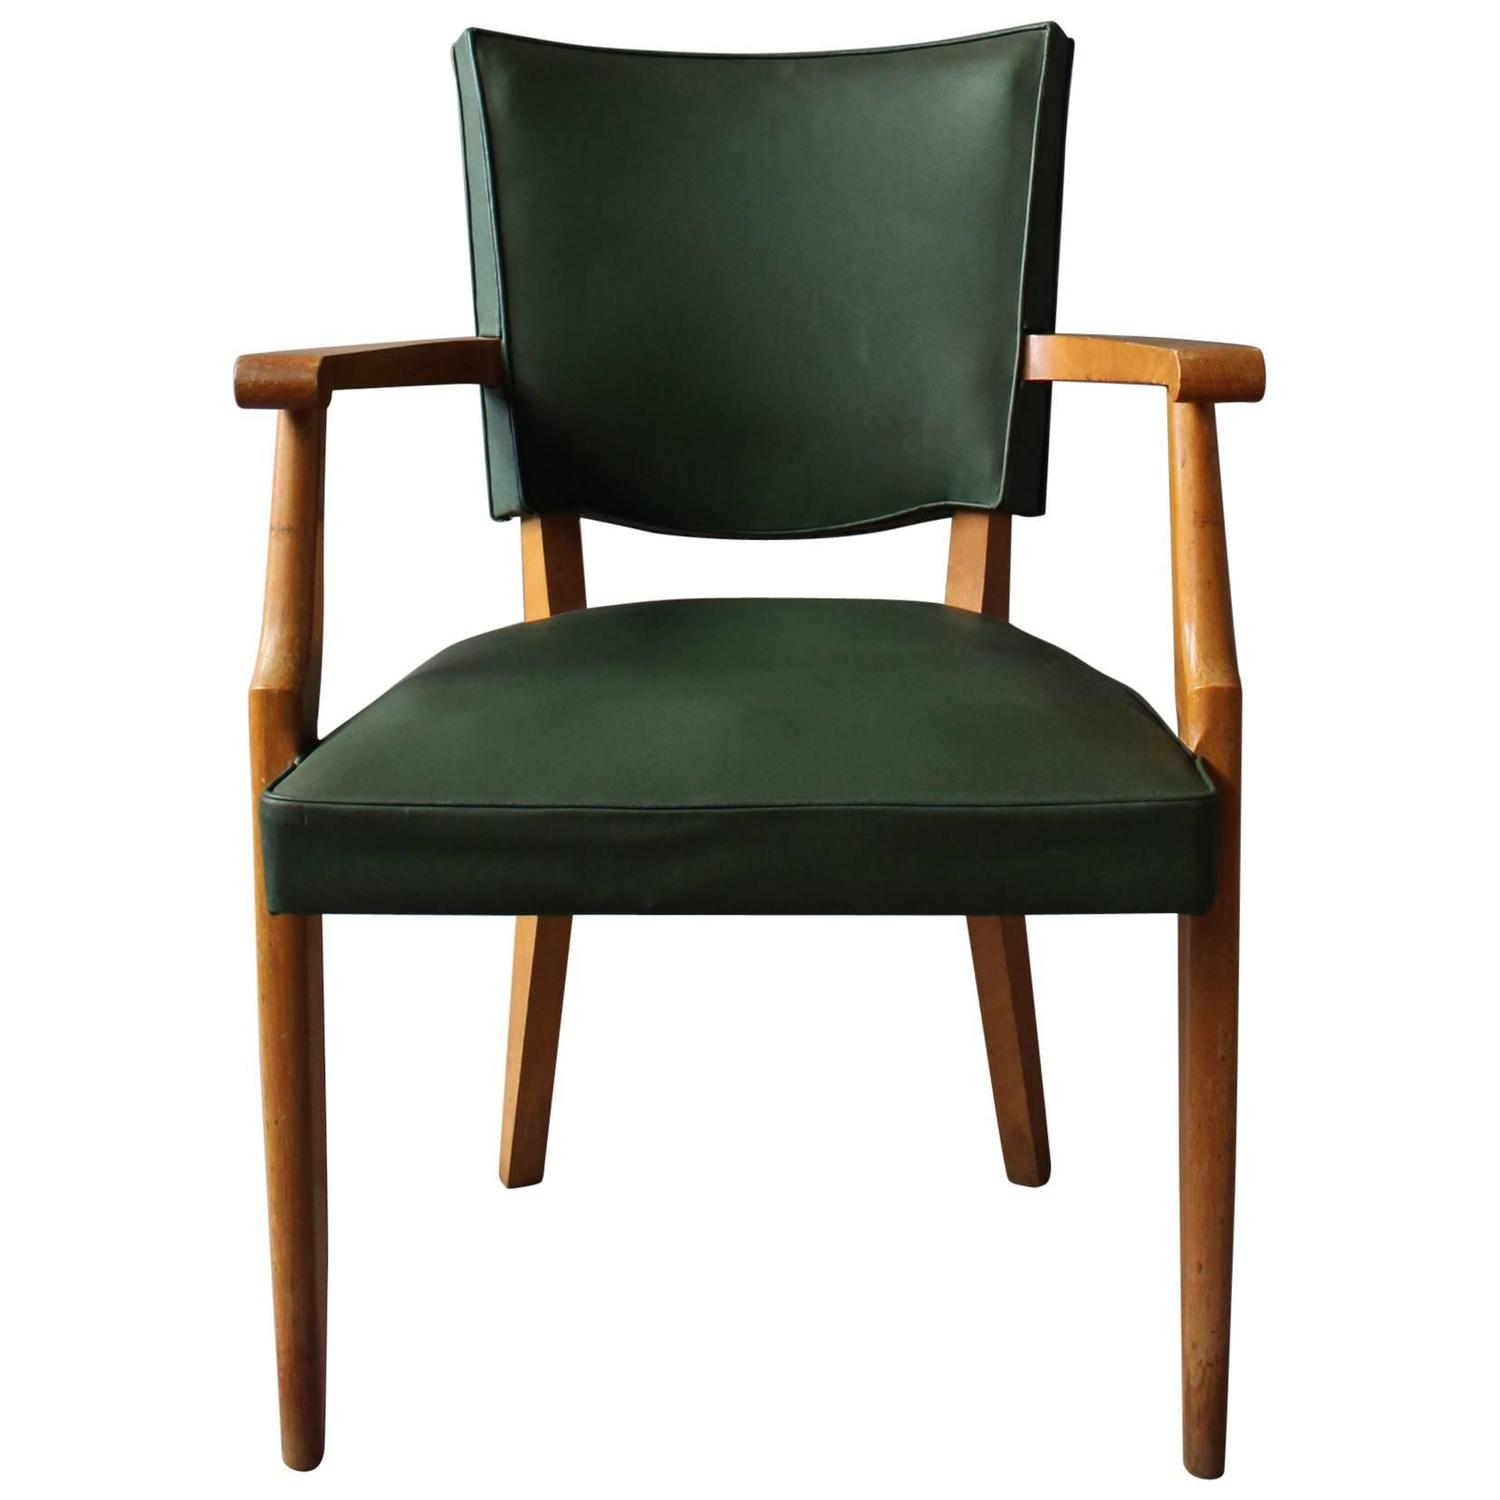 Artistic Chairs French Art Deco Desk Chair For Sale At 1stdibs